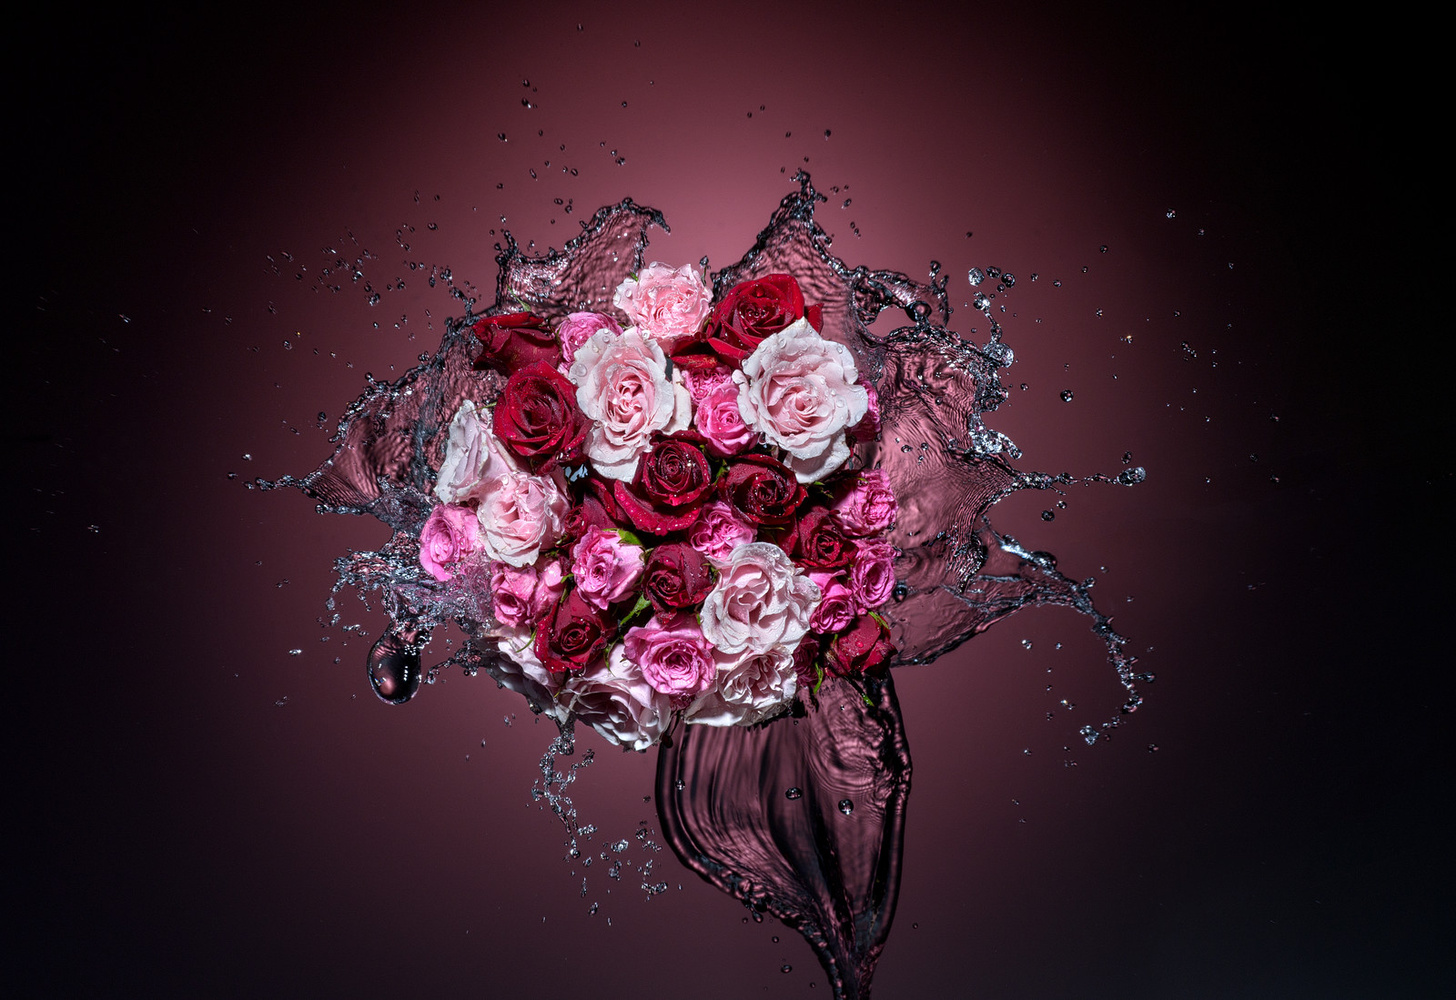 A splash of Roses by Alex Koloskov